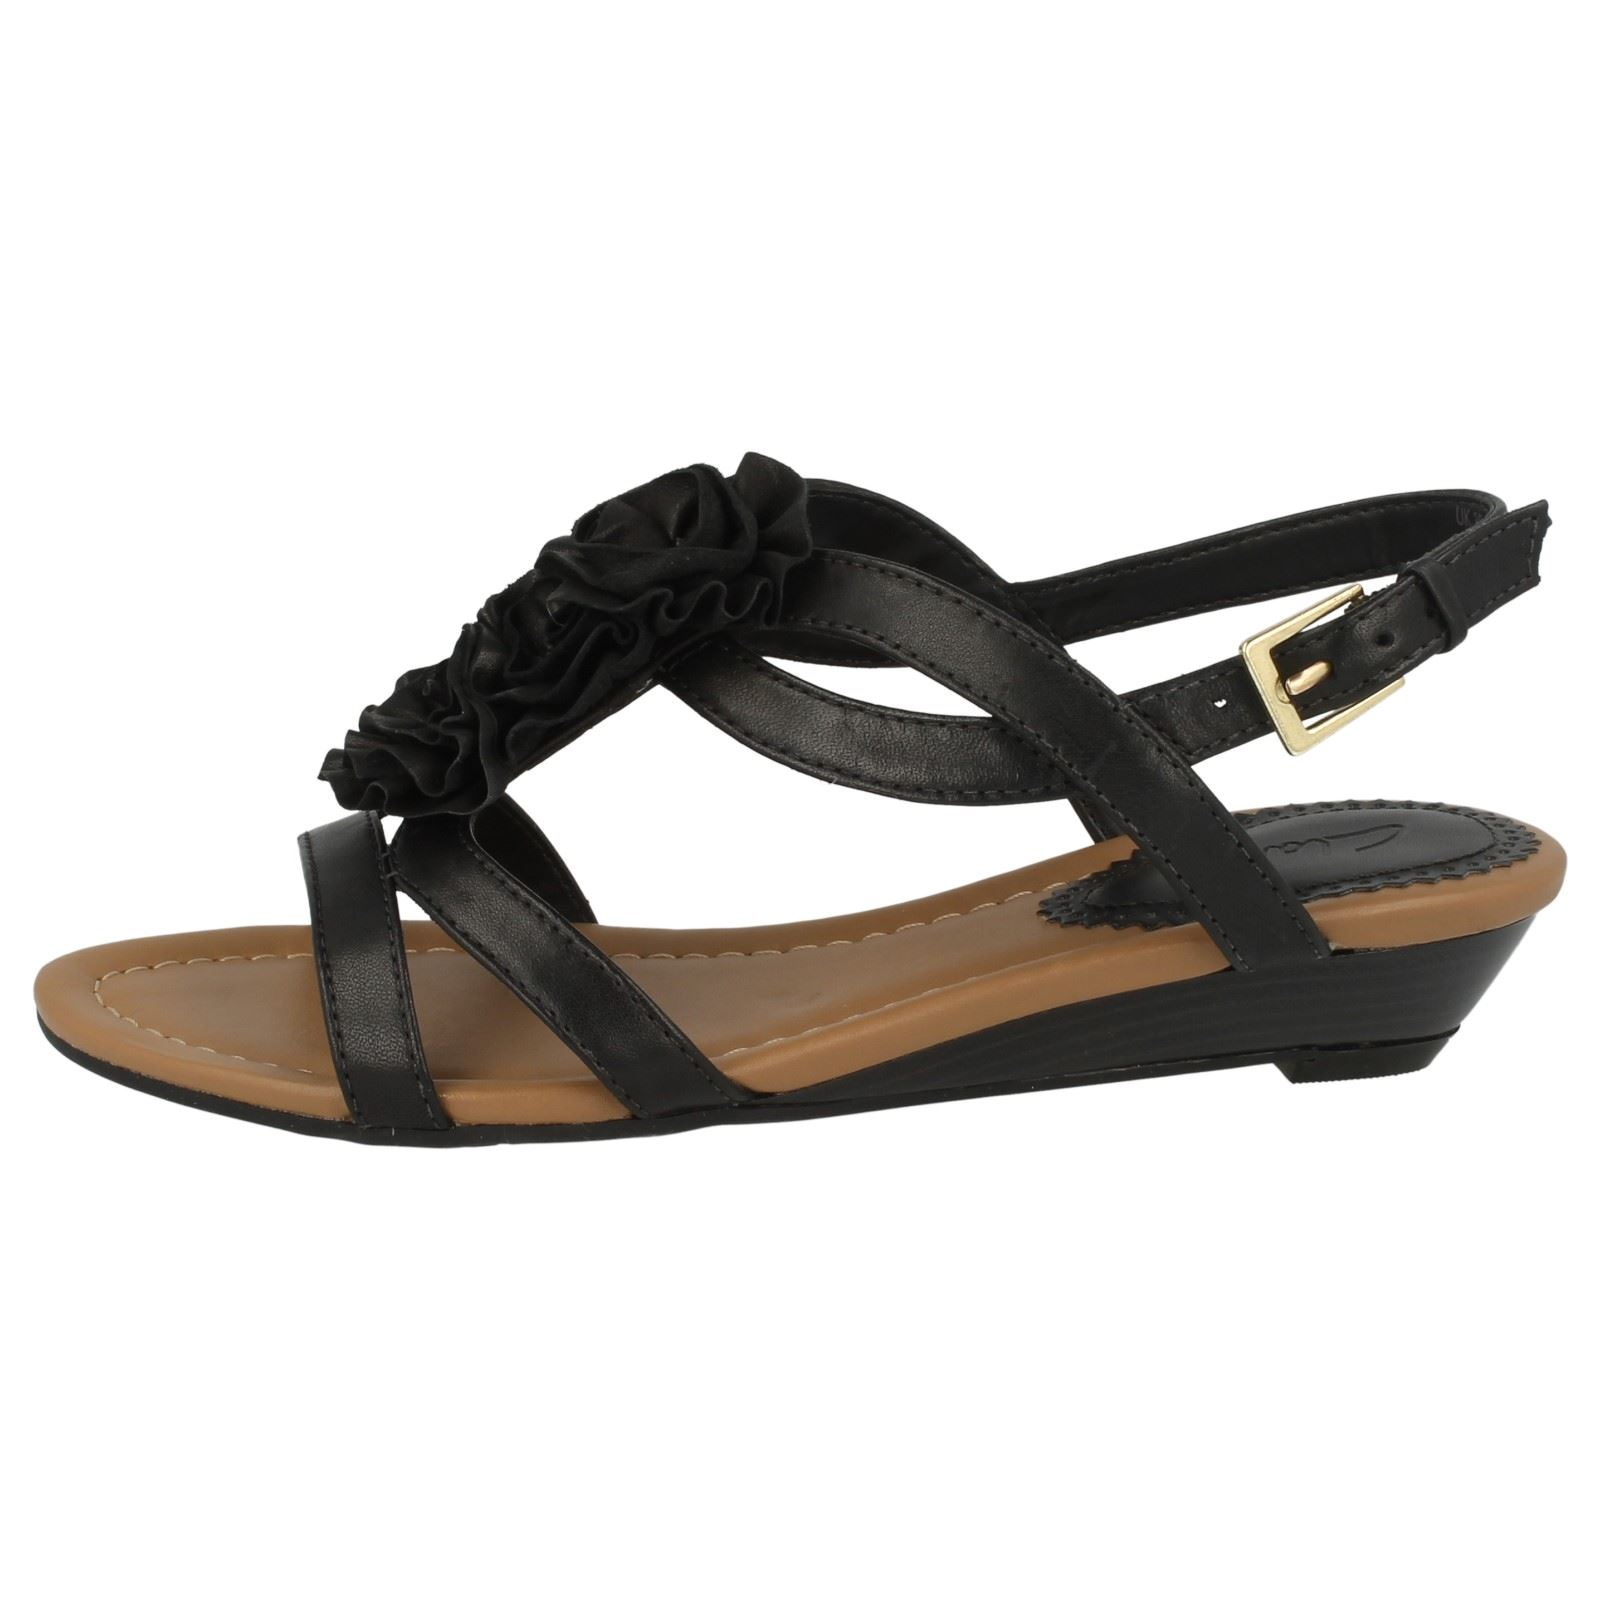 clarks leather floral detail sandals with small